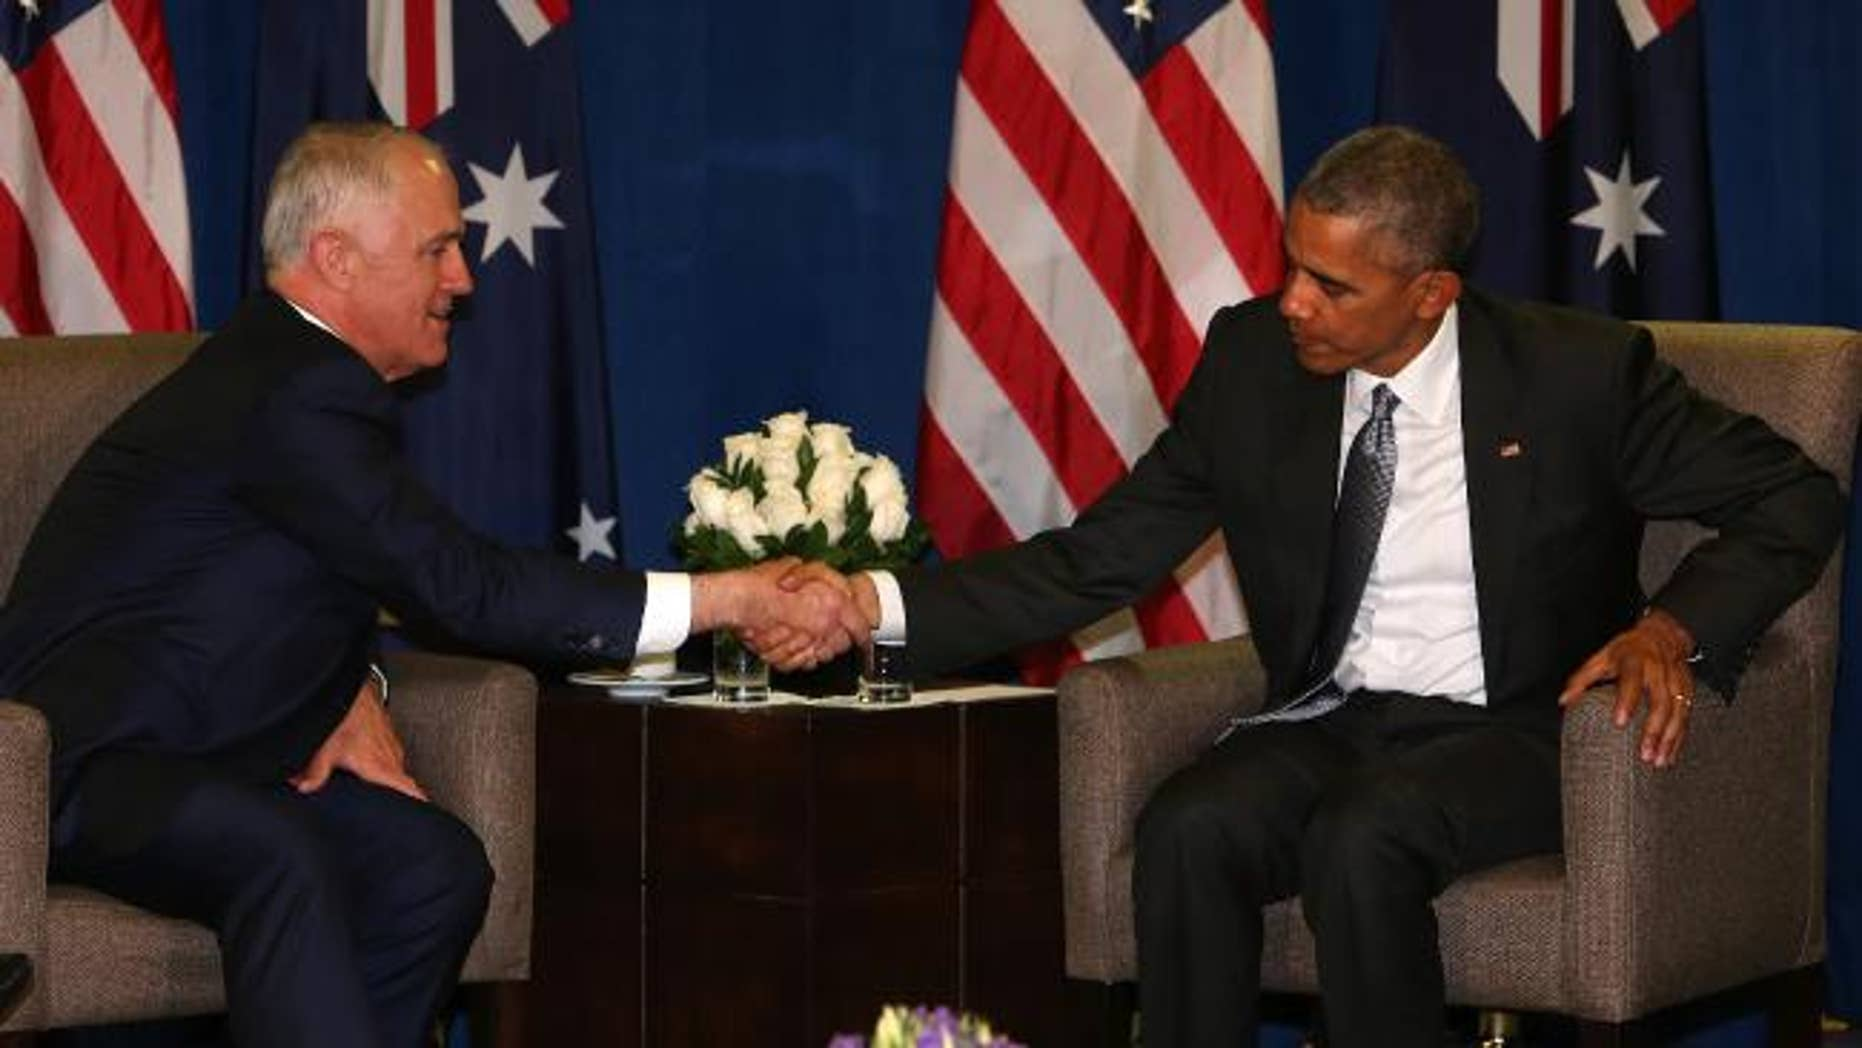 The Australian government had previously denied a refugee swap deal was agreed to with former President Barack Obama.